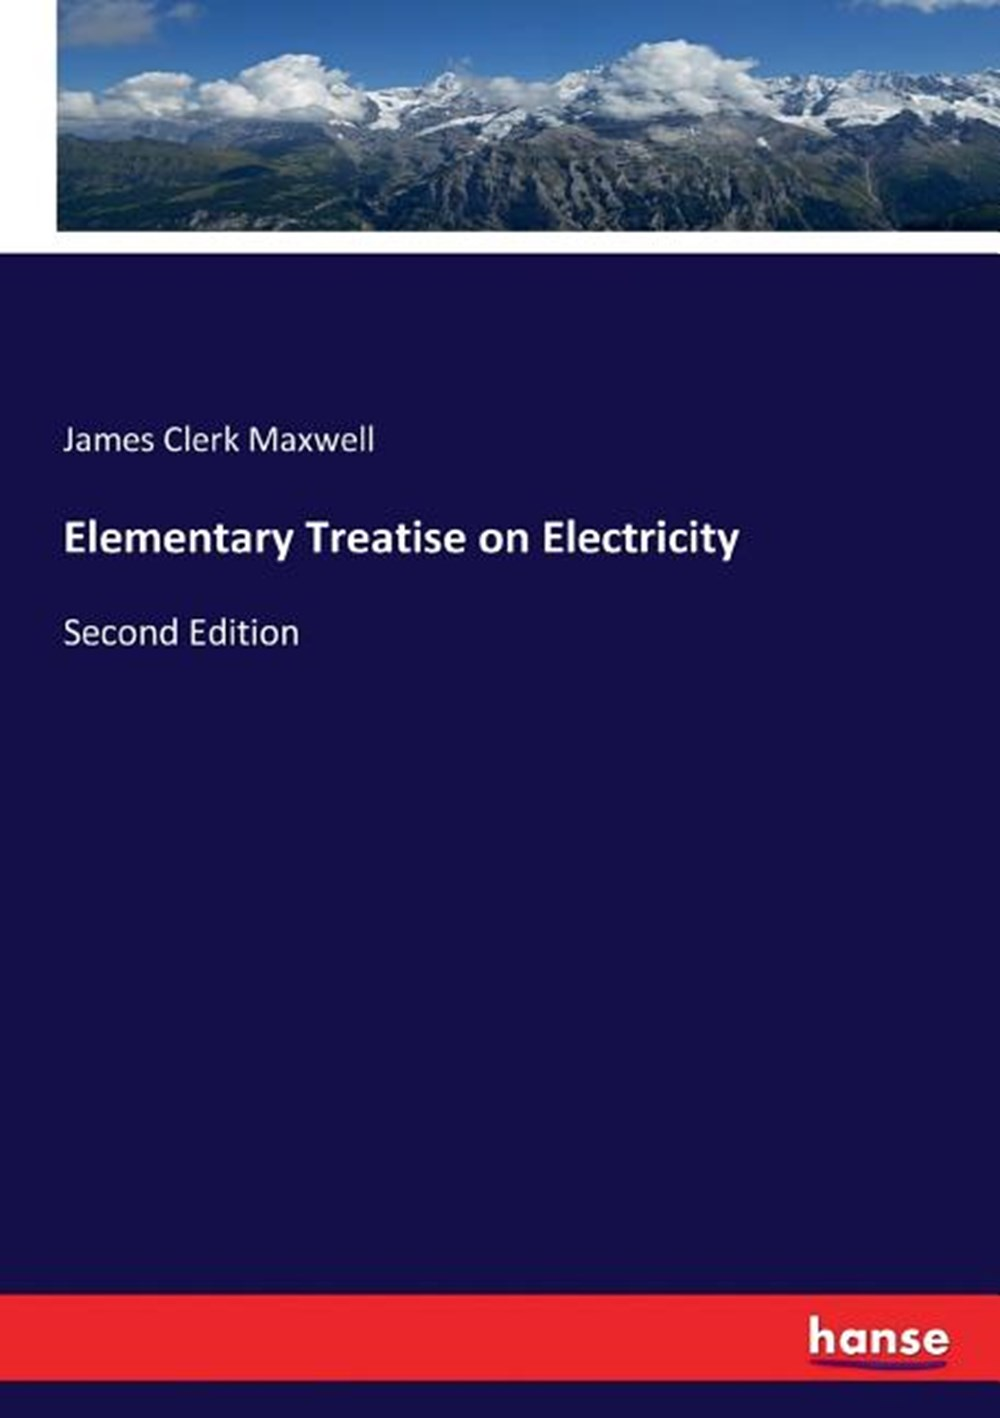 Elementary Treatise on Electricity Second Edition